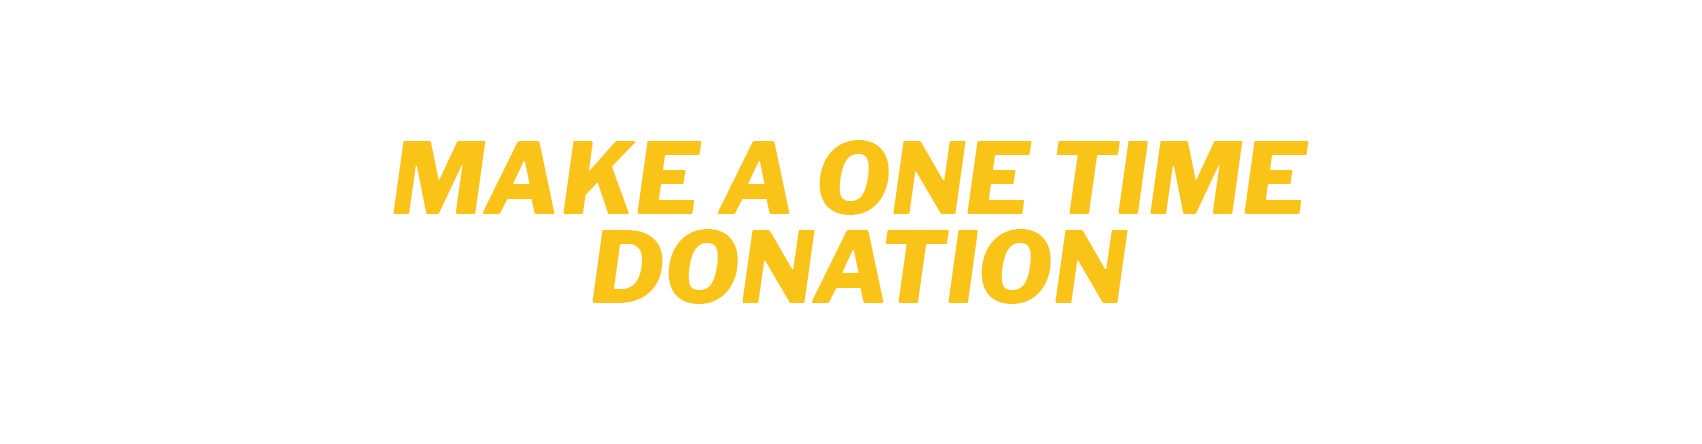 one-time-donation.png